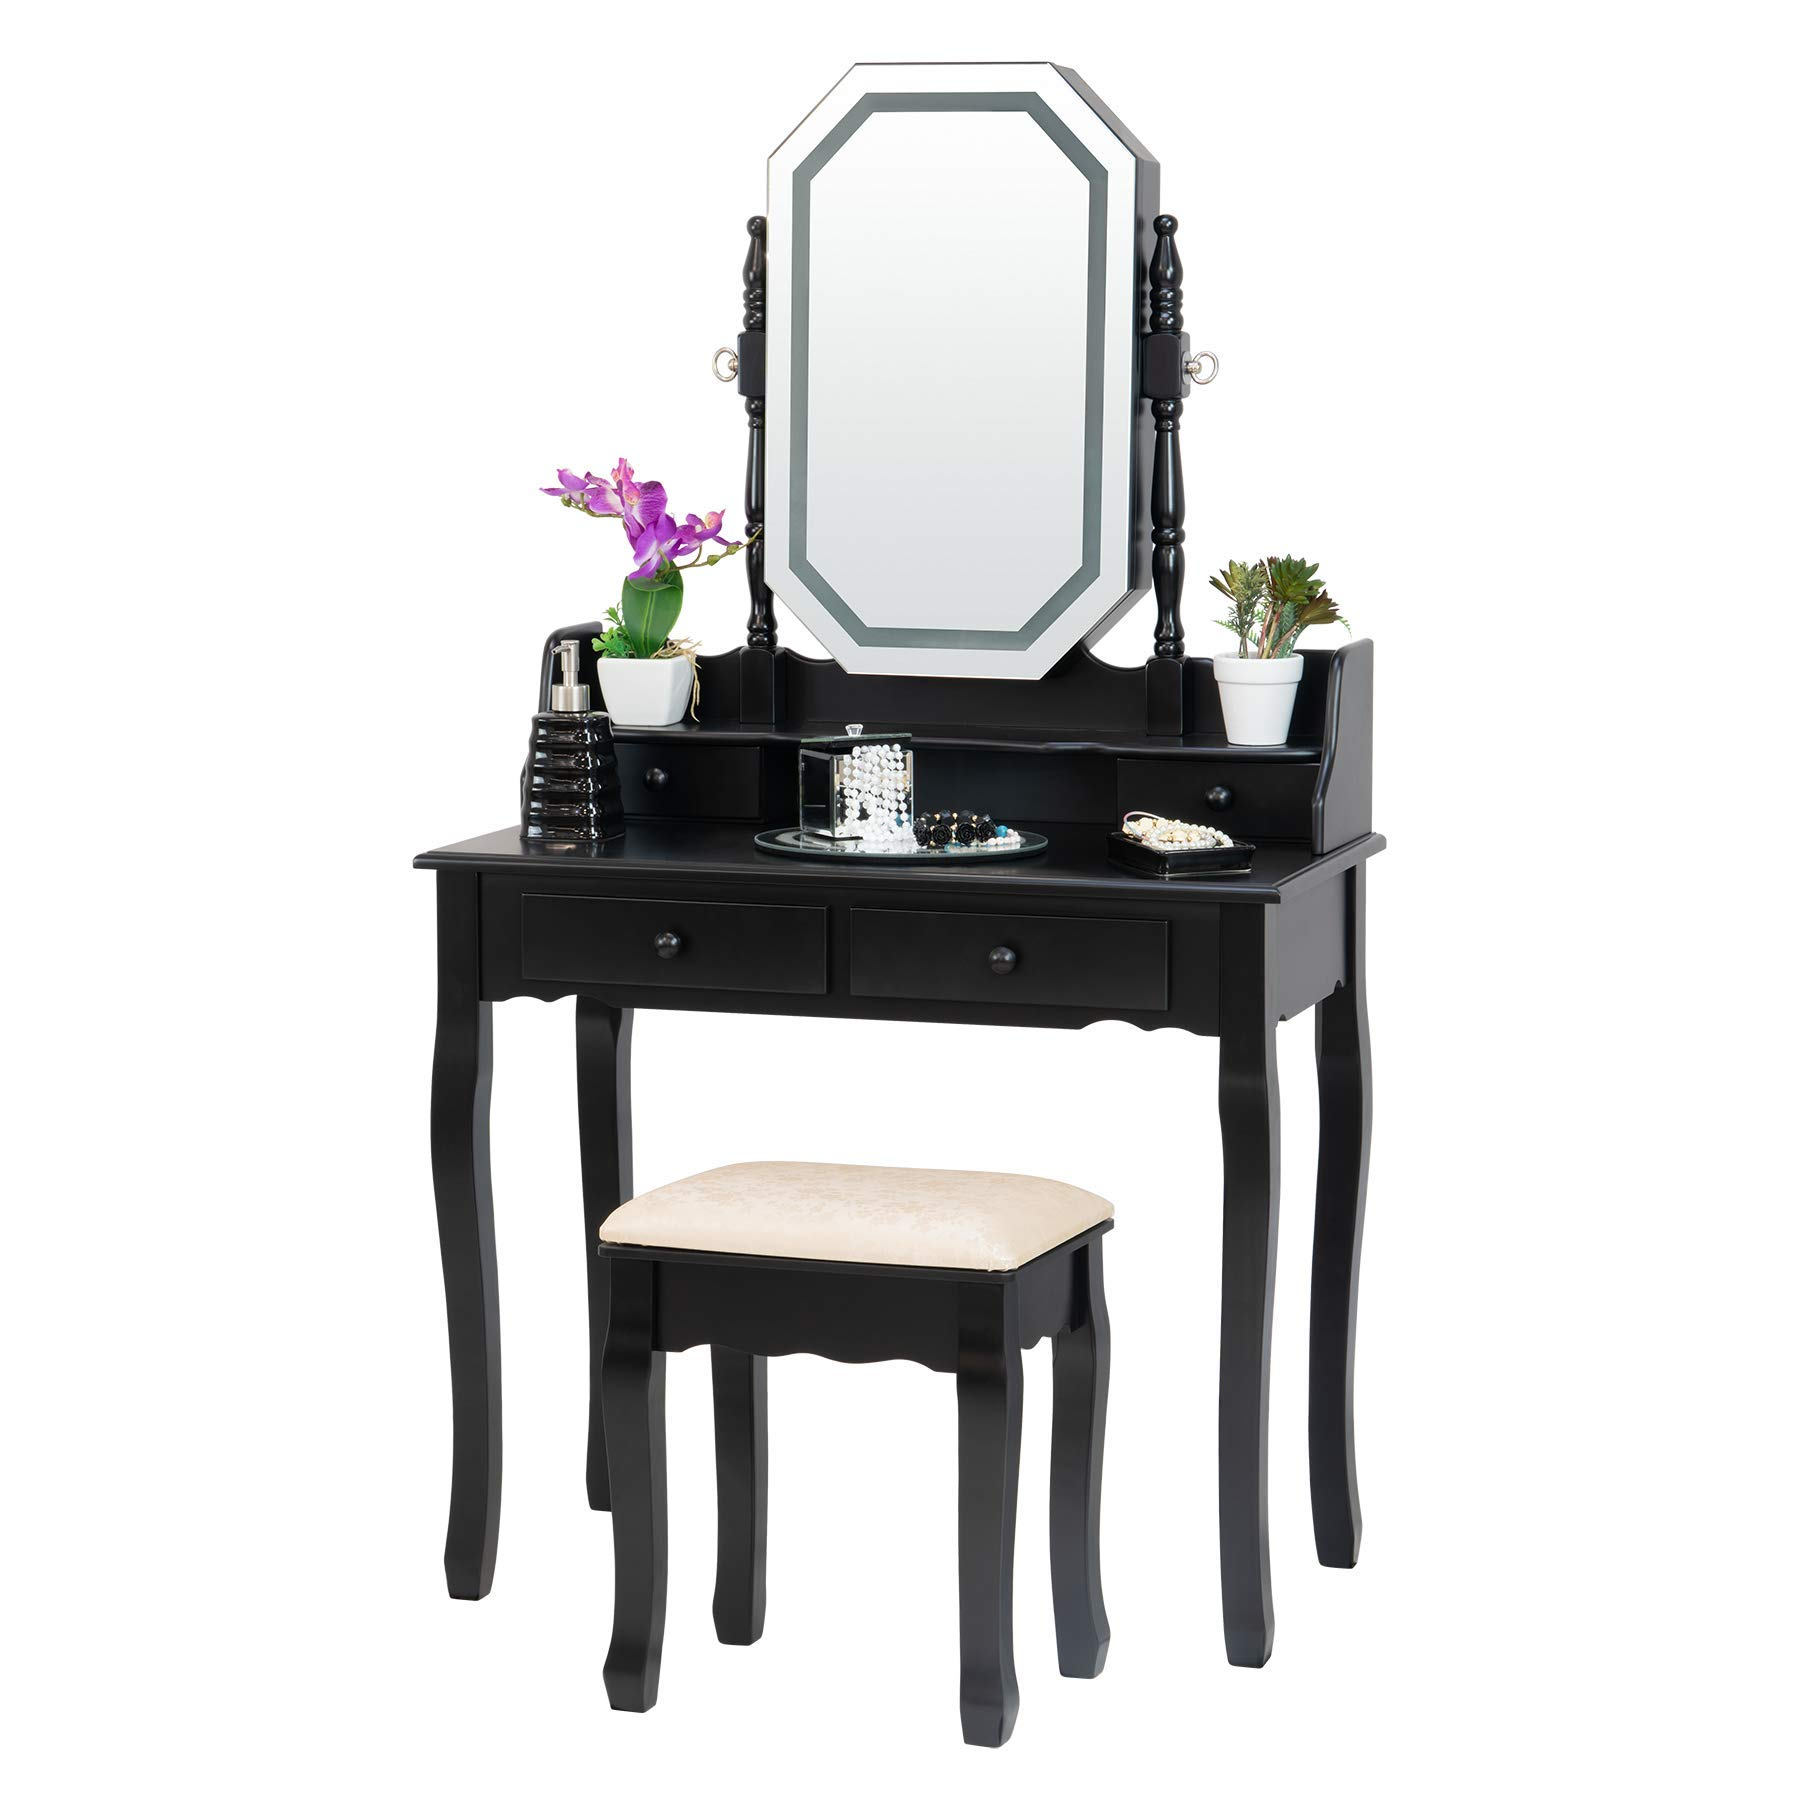 Fineboard FB-VT20-BK LED Lights Vanity Table Set with Stool, Mirror and 4 Drawers, Black